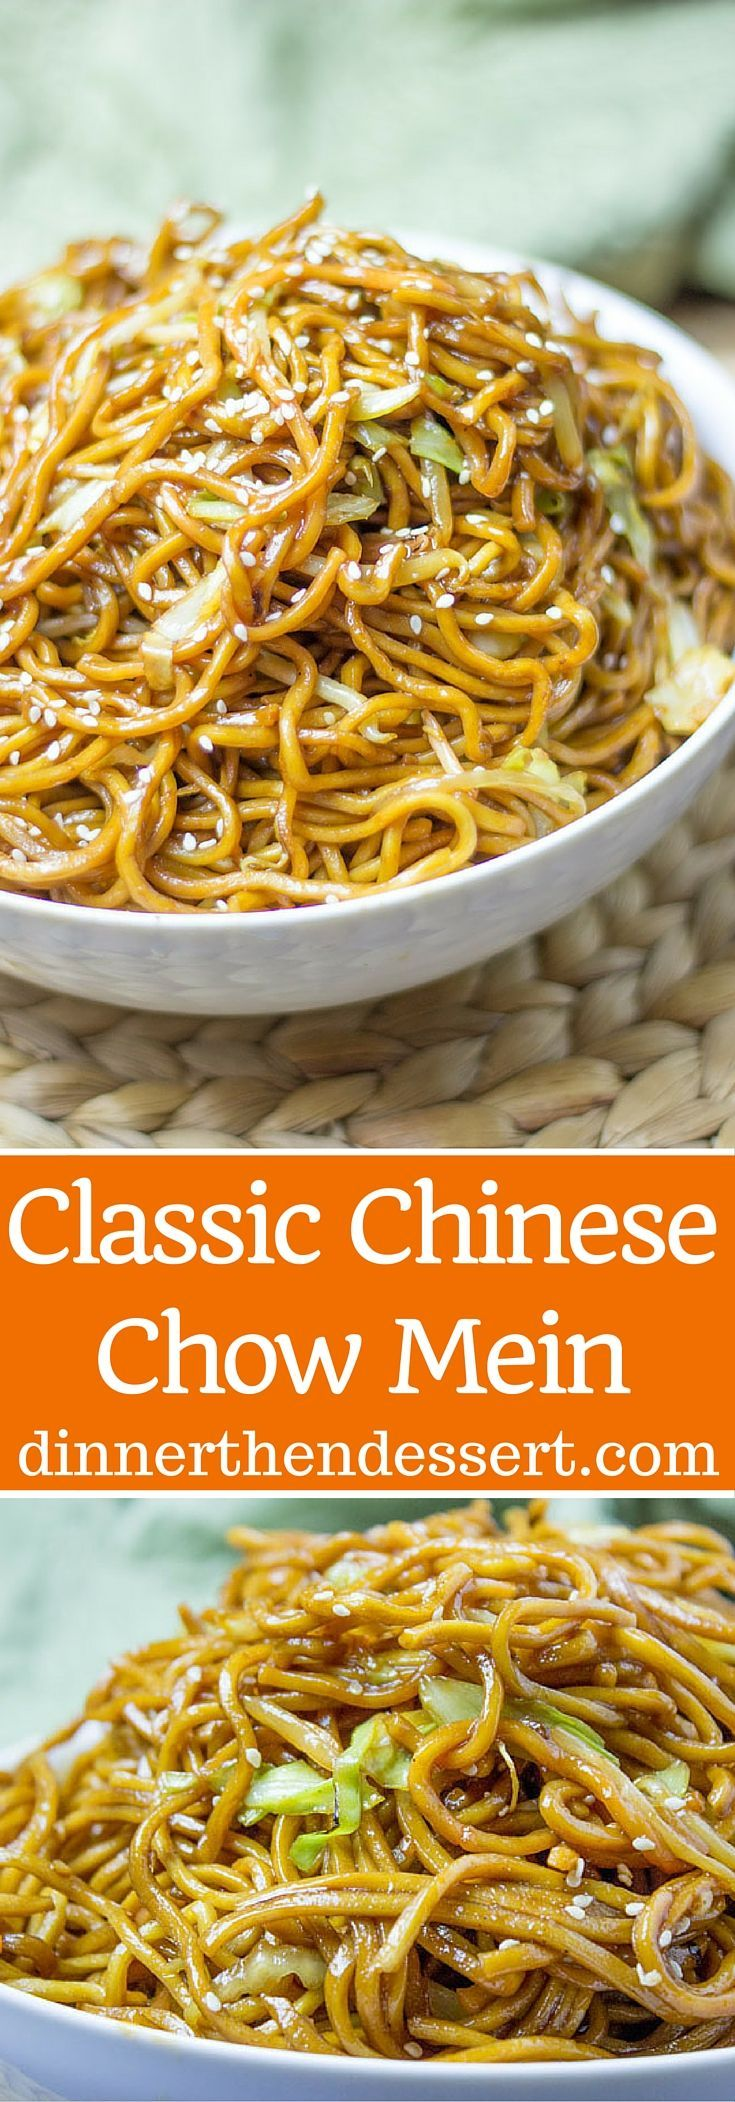 Best 25 tasty vegetarian recipes ideas on pinterest easy classic chinese chow mein with authentic ingredients and easy ingredient swaps to make this a pantry chinese food recipes forumfinder Image collections